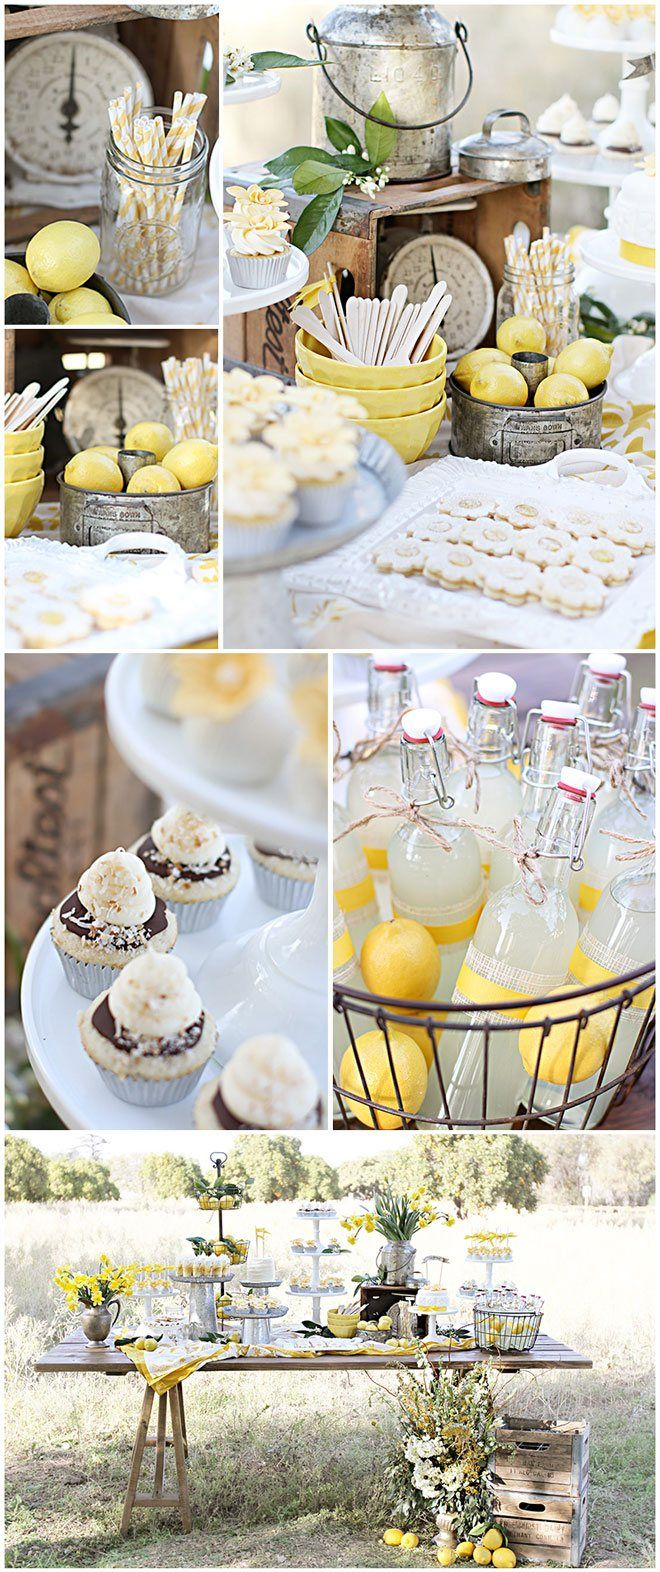 Words can not describe how lovely this 10th Anniversary Lemon Dessert Table styled-shoot from Brooke Photo & Designis. So elegant and classy with just the perfect about of rustic. It…